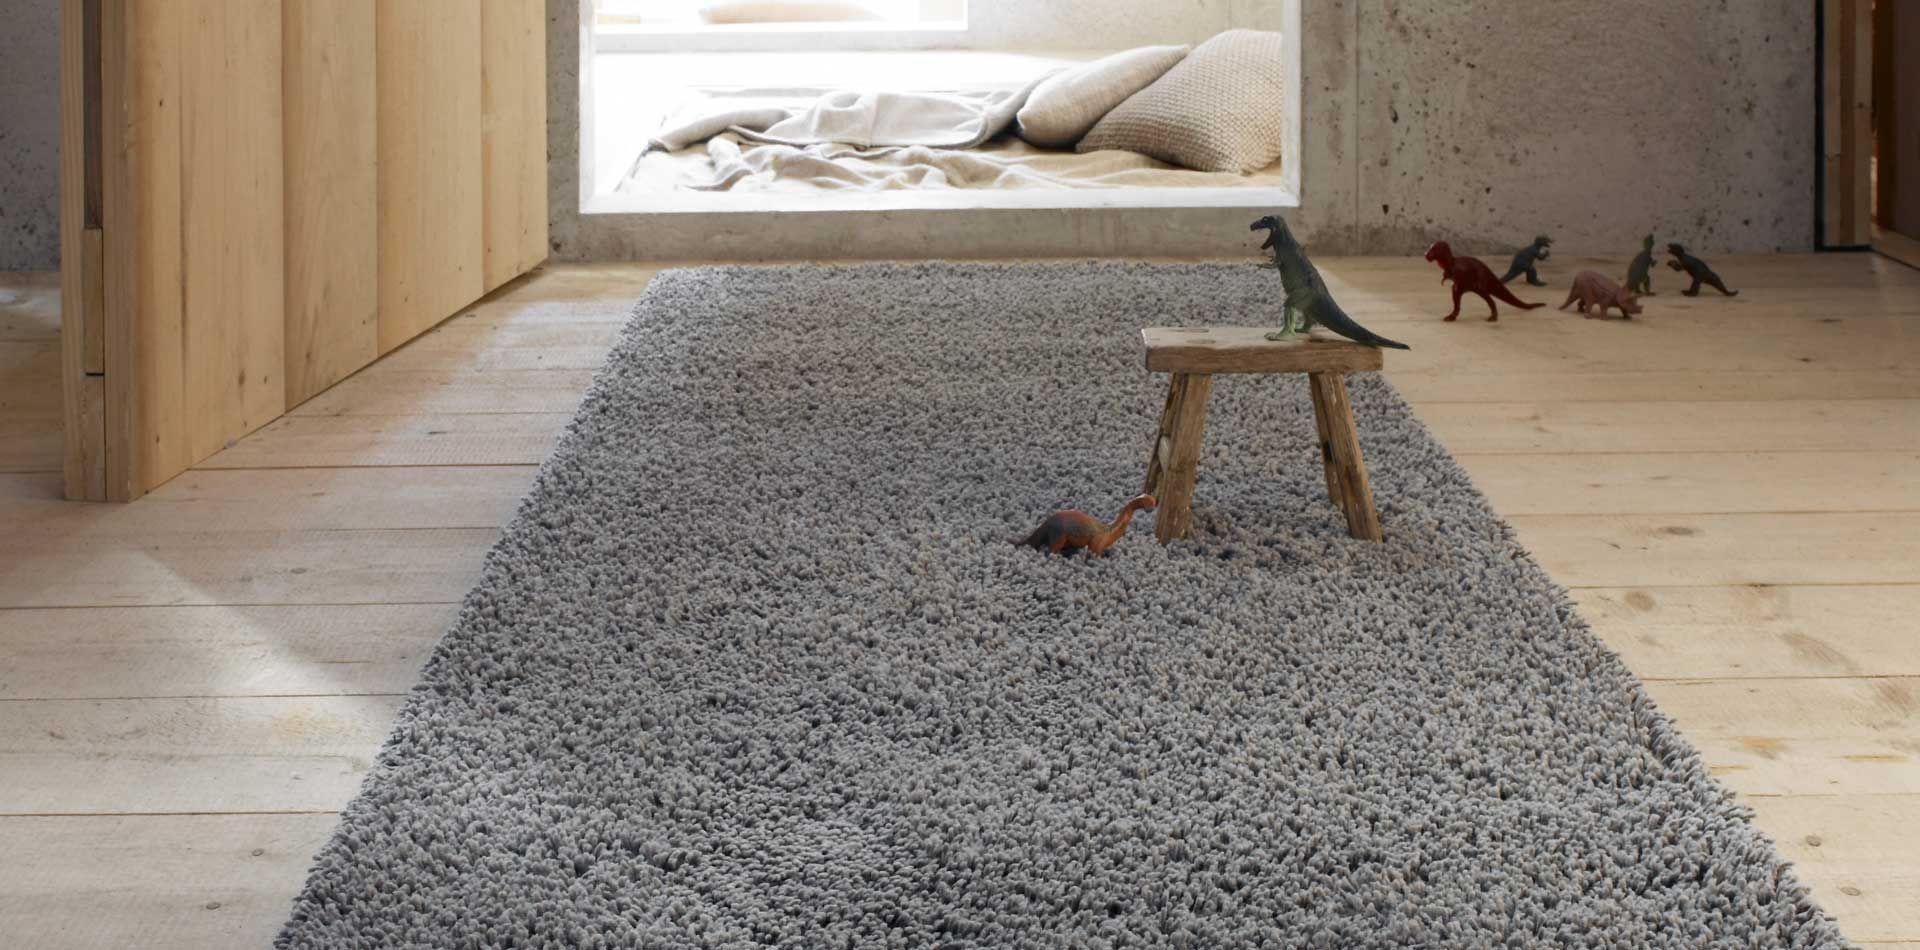 Object Carpet object carpet wins award after award for their innovative designs